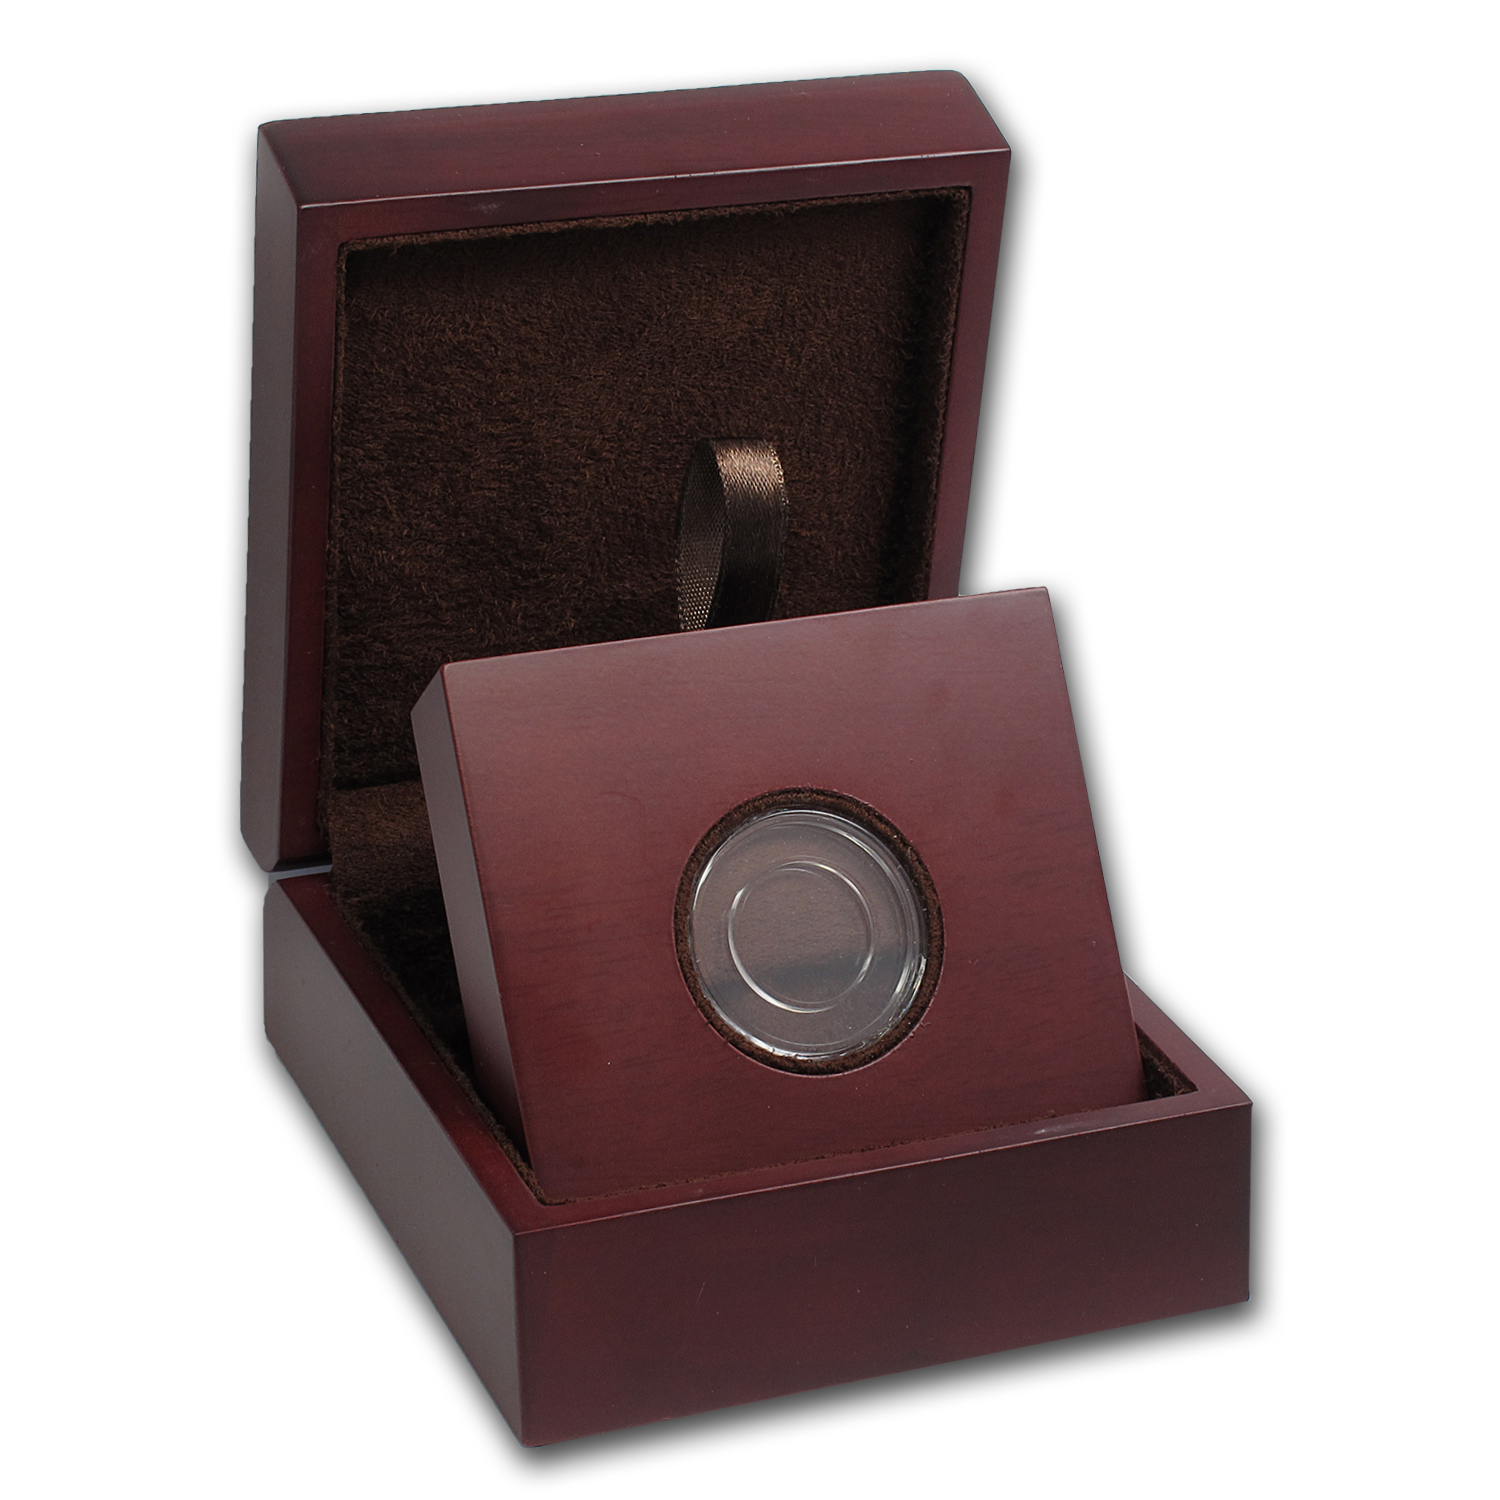 APMEX Wood Gift Box - Includes 16 mm Direct Fit Air-Tite Holder